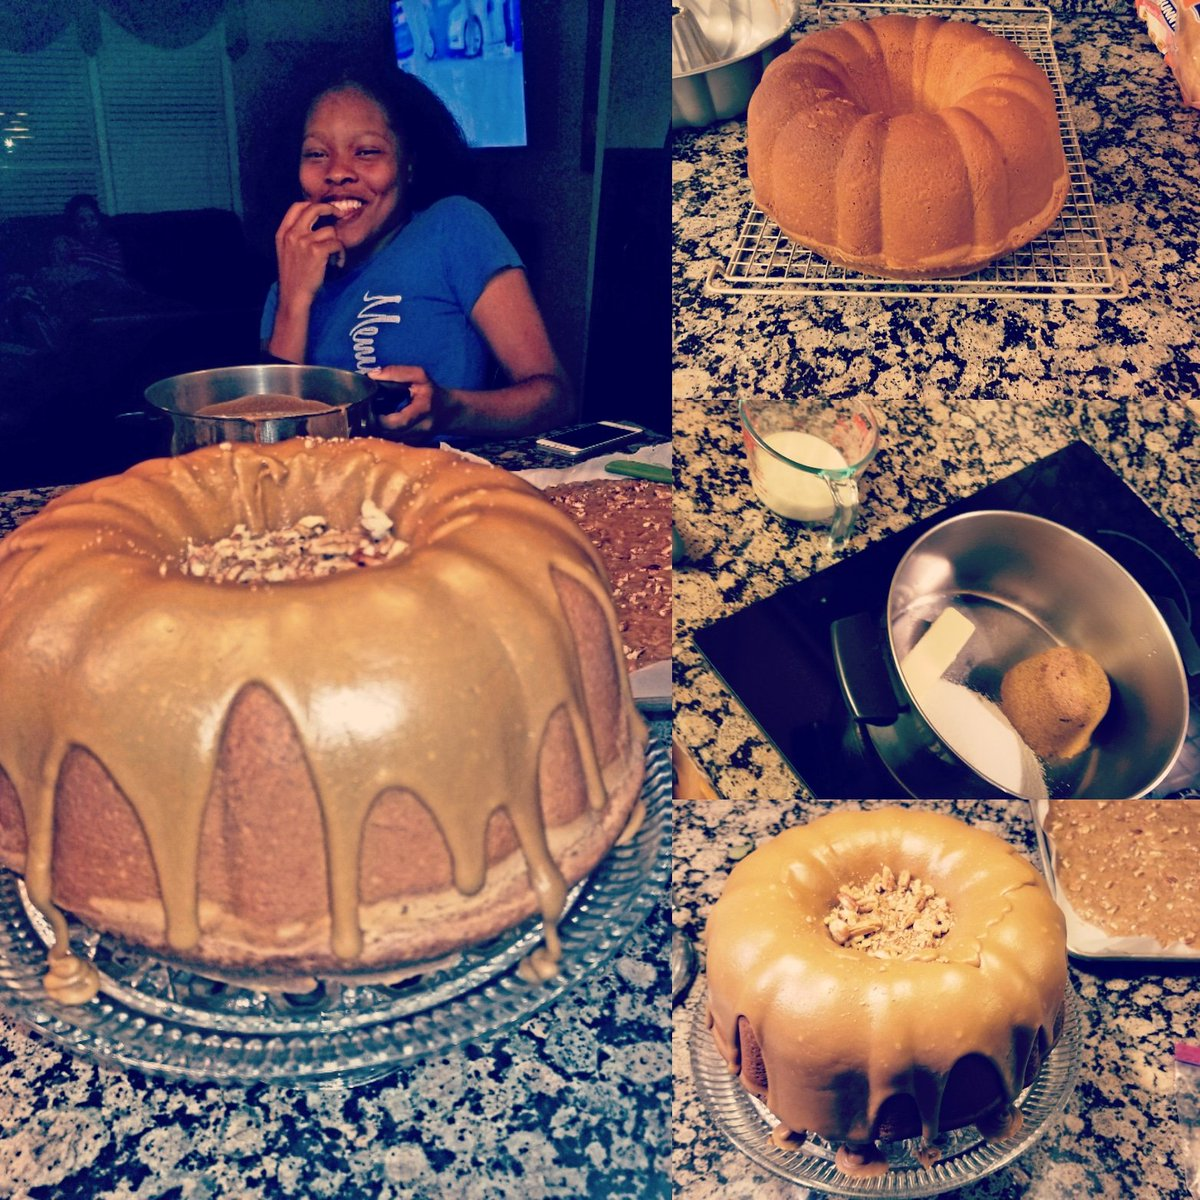 Louis C Brownlee On Twitter Homemade Birthday Cake And Caramel